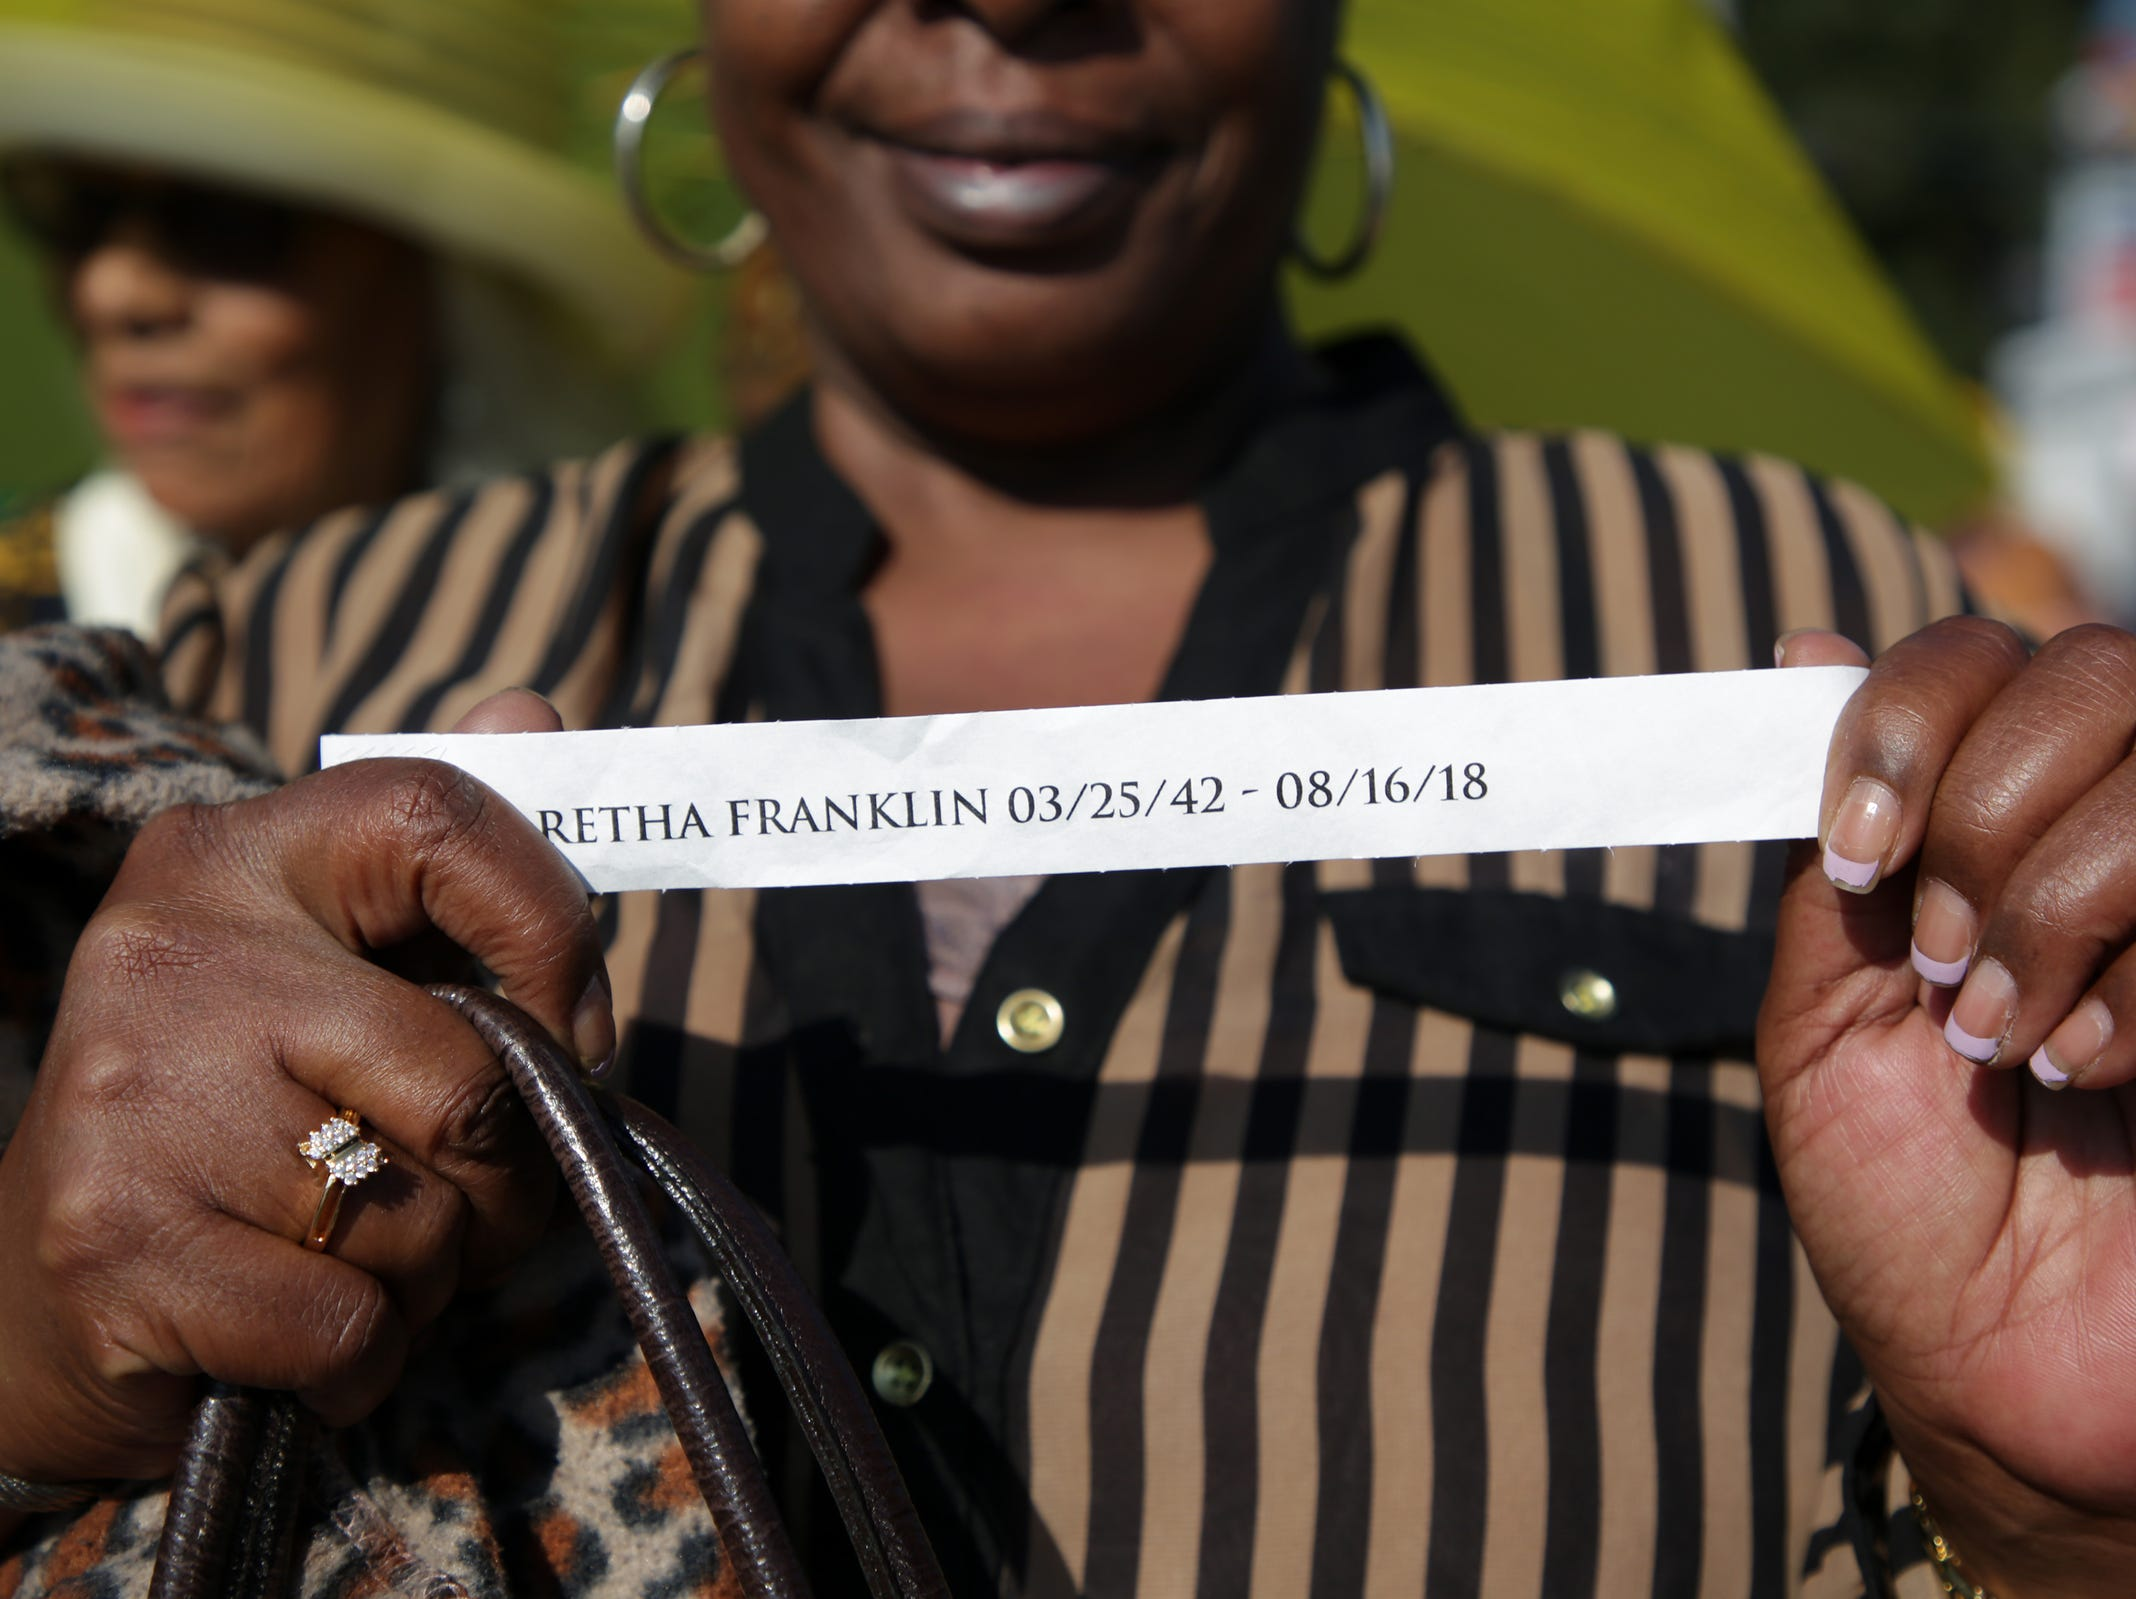 After having waited in line for several hours people put on their wrist band to be able to enter Greater Grace Temple for the funeral of Aretha Franklin on Friday, August 31, 2018.